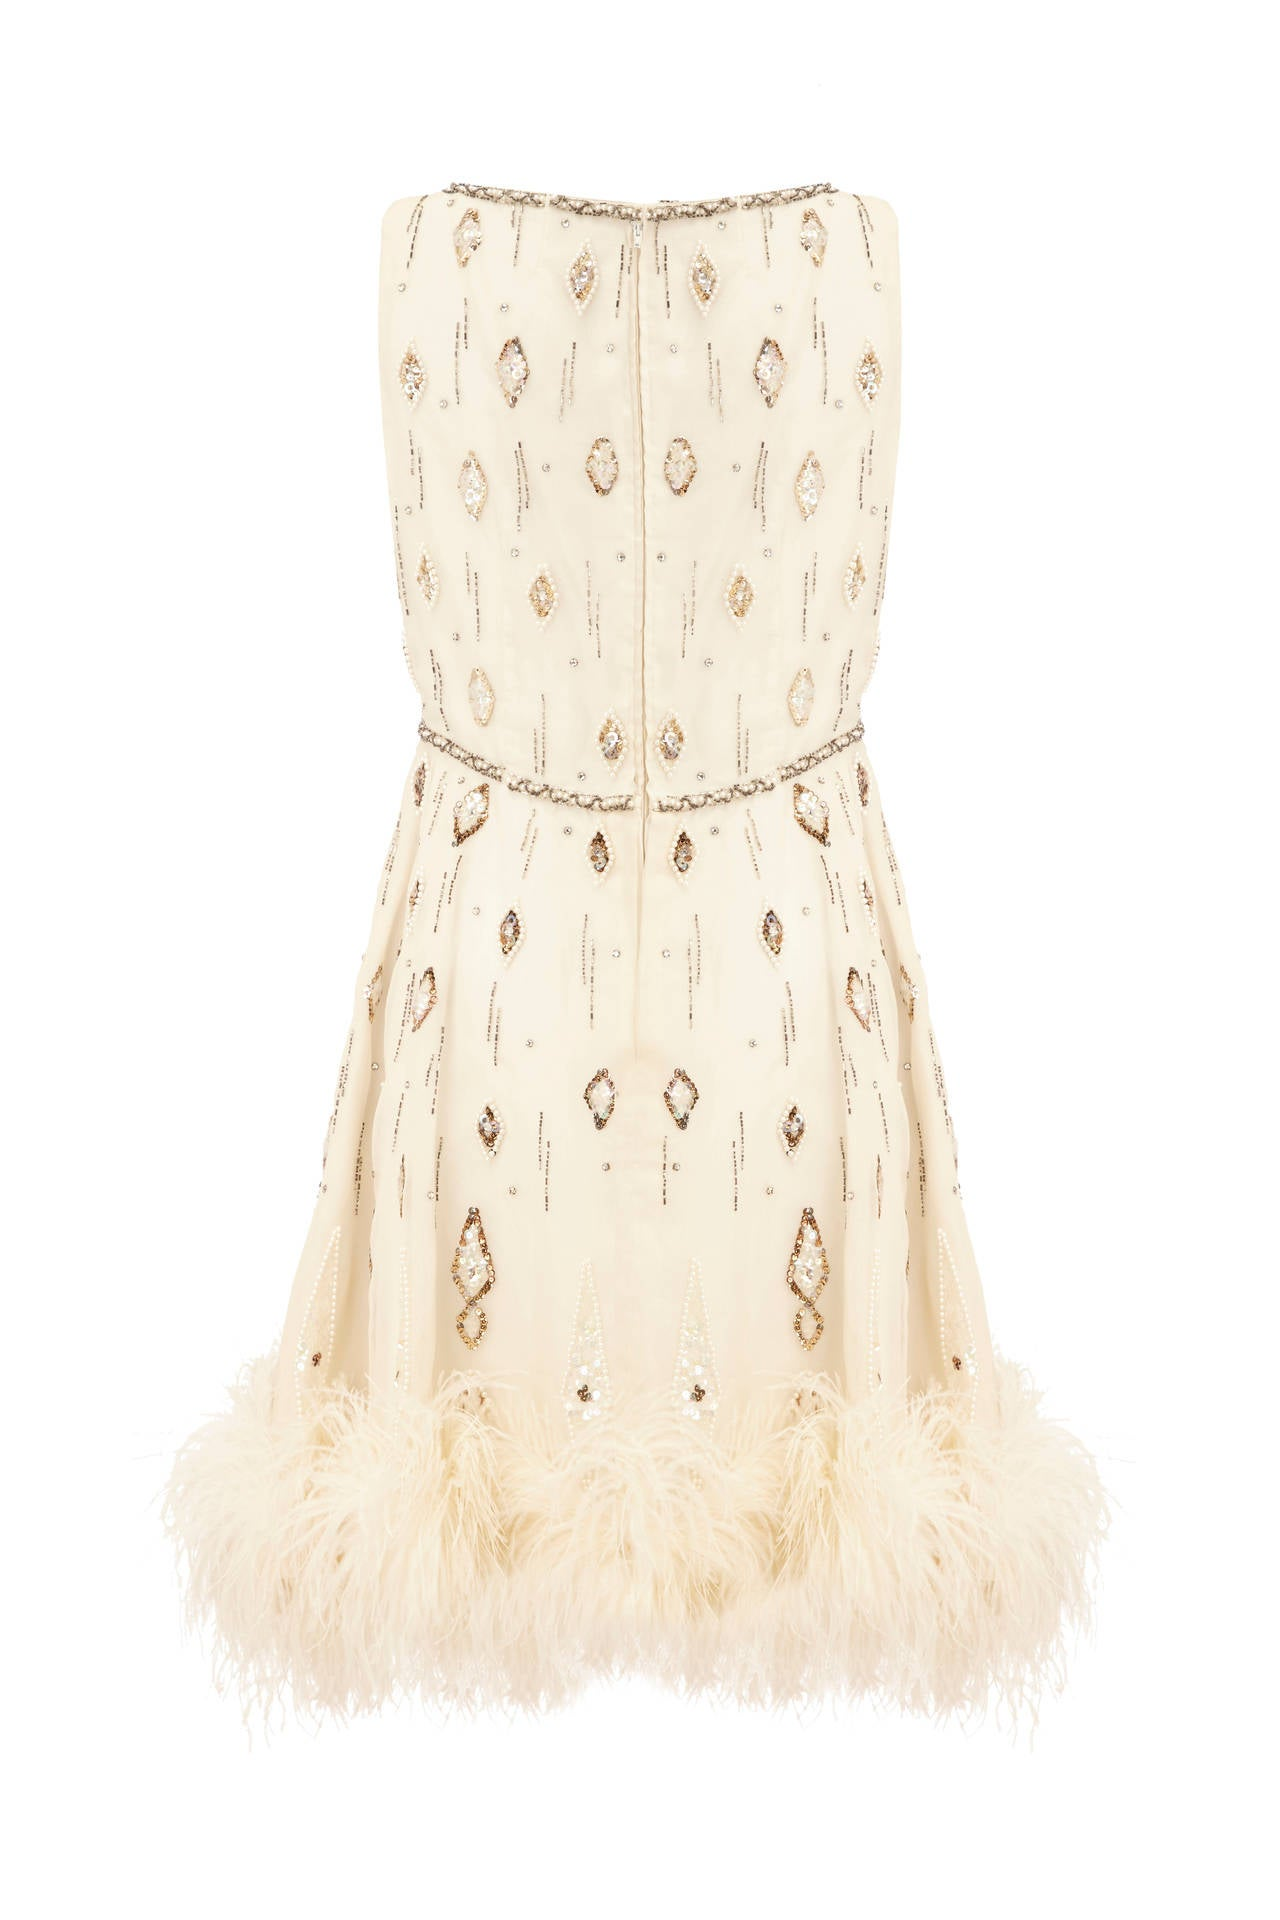 1960s White Beaded Dress With Feather Trim 2